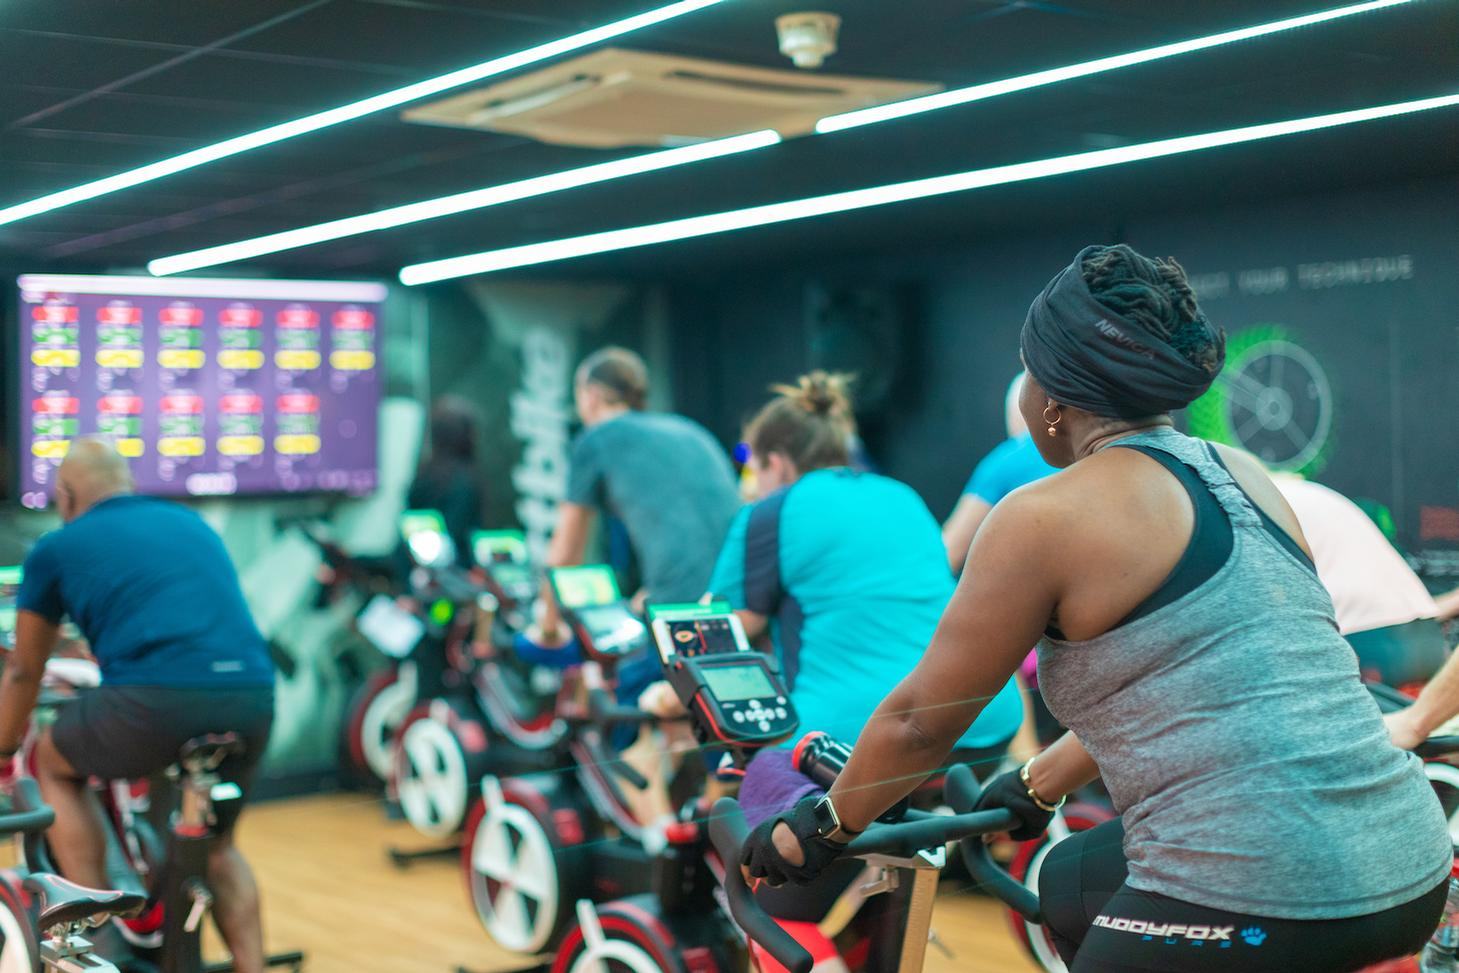 The studio is appealing to a wide range of customers from active older people to elite athletes